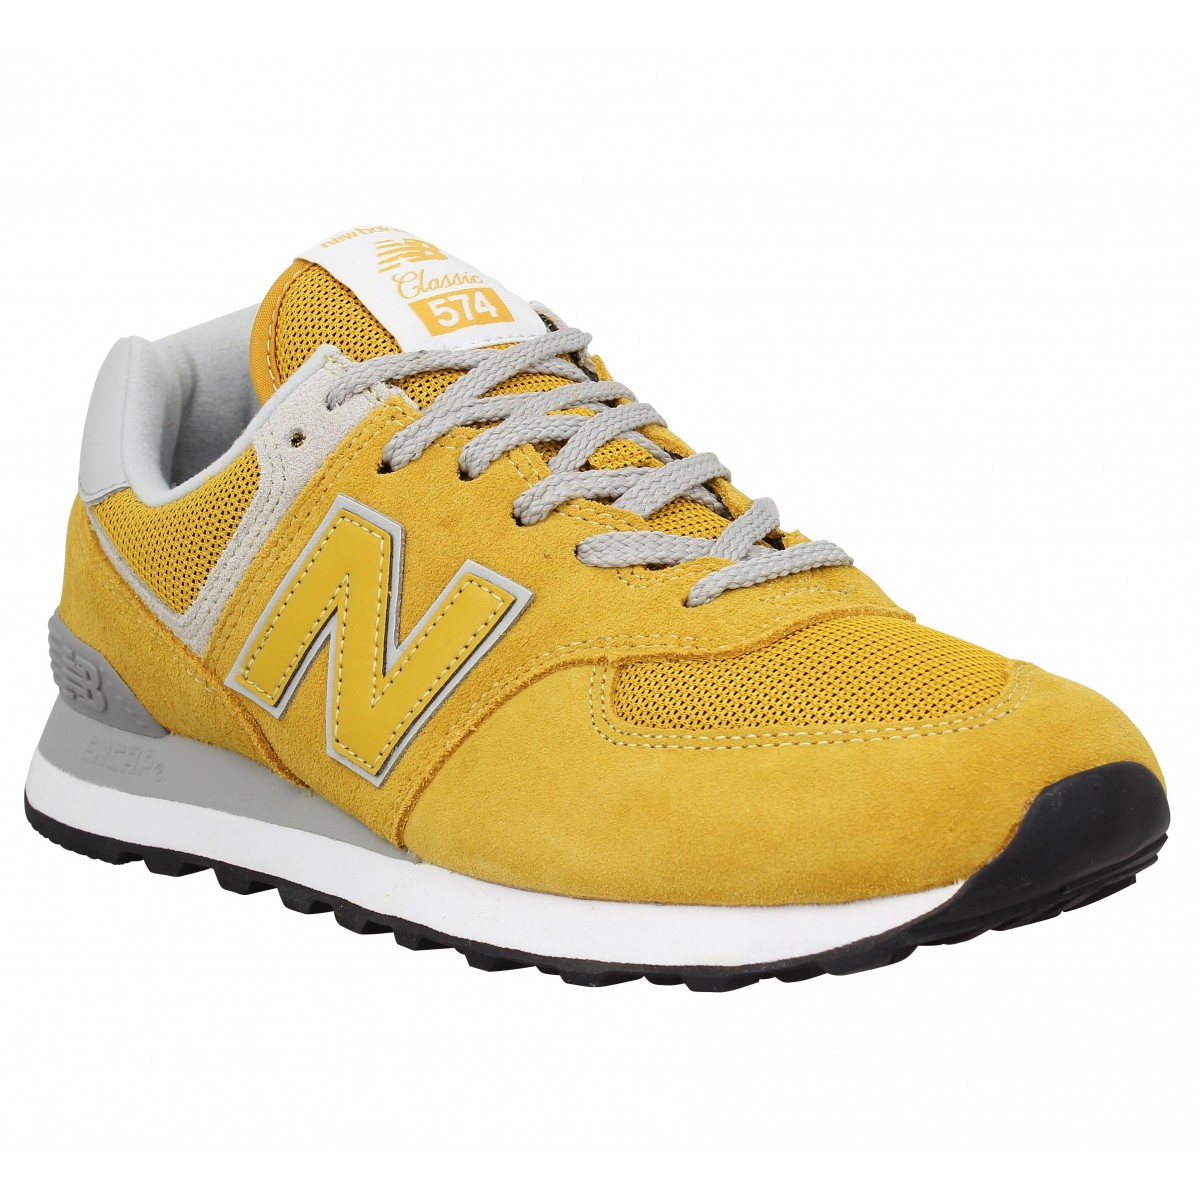 new balance homme vert orange 574 2019